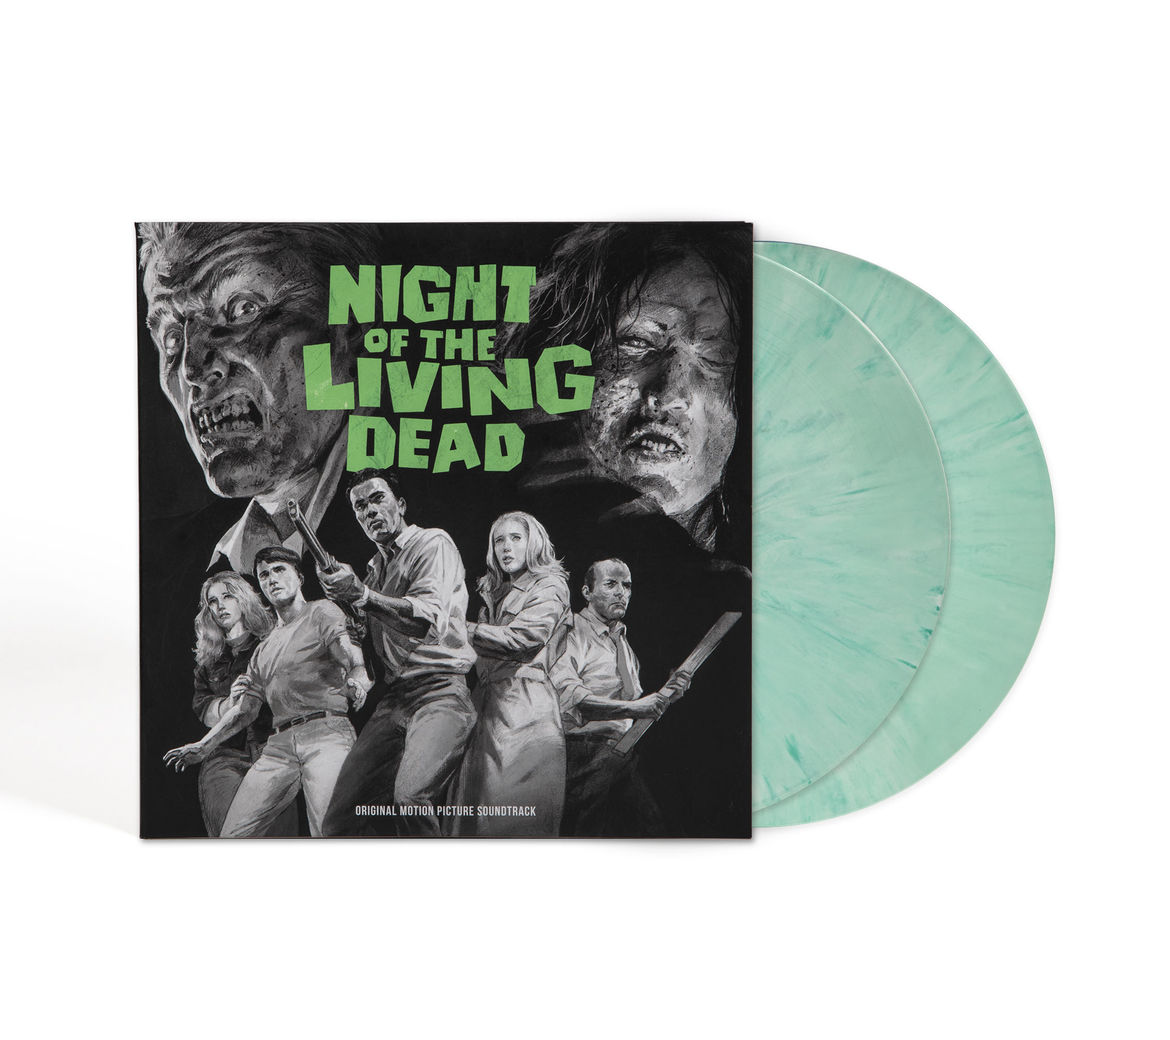 Night of the Living Dead Waxwork Records